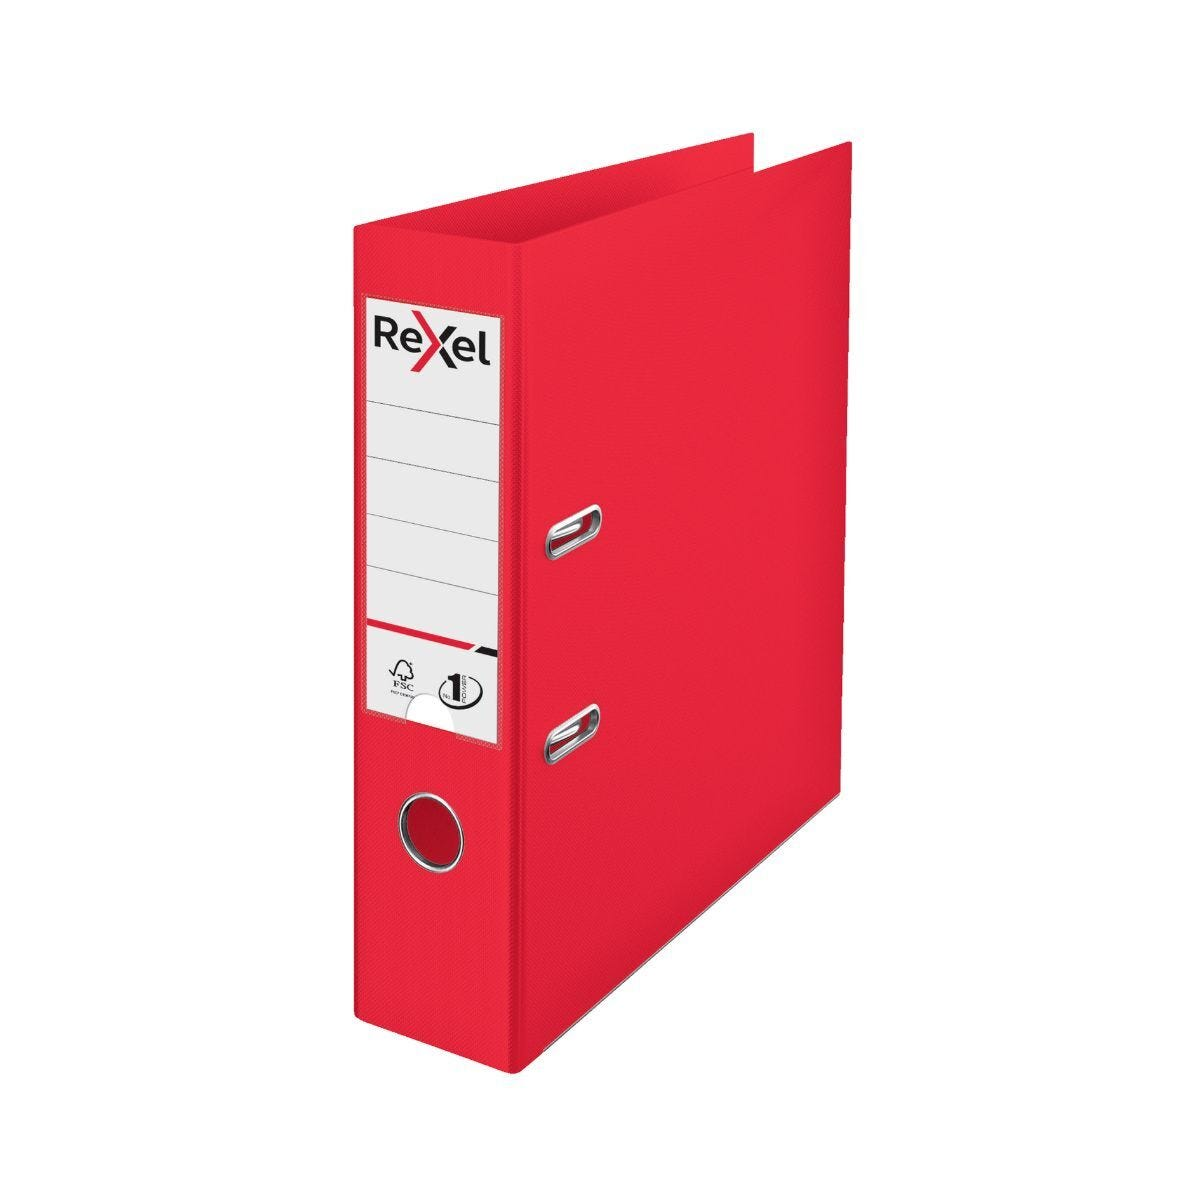 Rexel Choices Pack of 10 Polypropylene Lever Arch File A4 Red